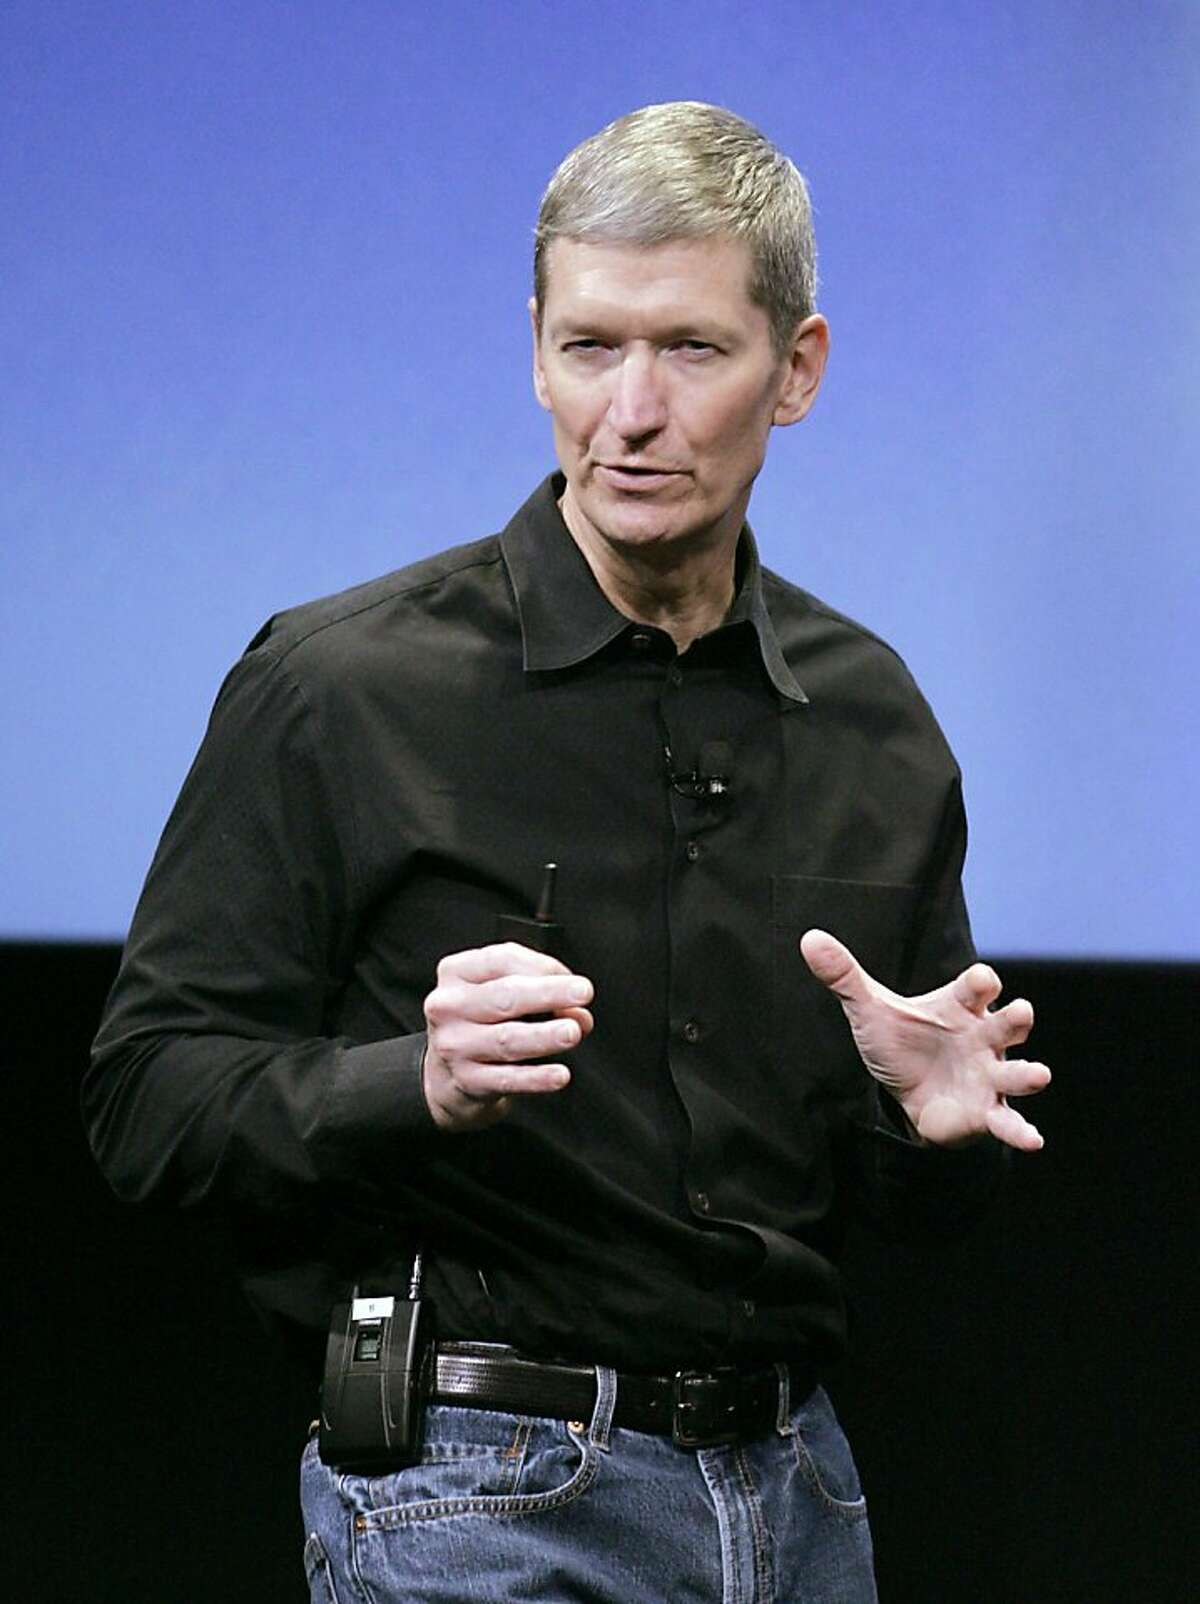 FILE - In this Oct. 14, 2008 file photoApple's chief operating officer, Tim Cook gestures during a meeting at Apple headquarters in Cupertino, Calif. Apple Inc. on Wednesday, Aug. 24, 2011 said Steve Jobs is resigning as CEO, effective immediately. He will be replaced by Cook, who was the company's chief operating officer. It said Jobs has been elected as Apple's chairman. (AP Photo/Paul Sakuma, File)